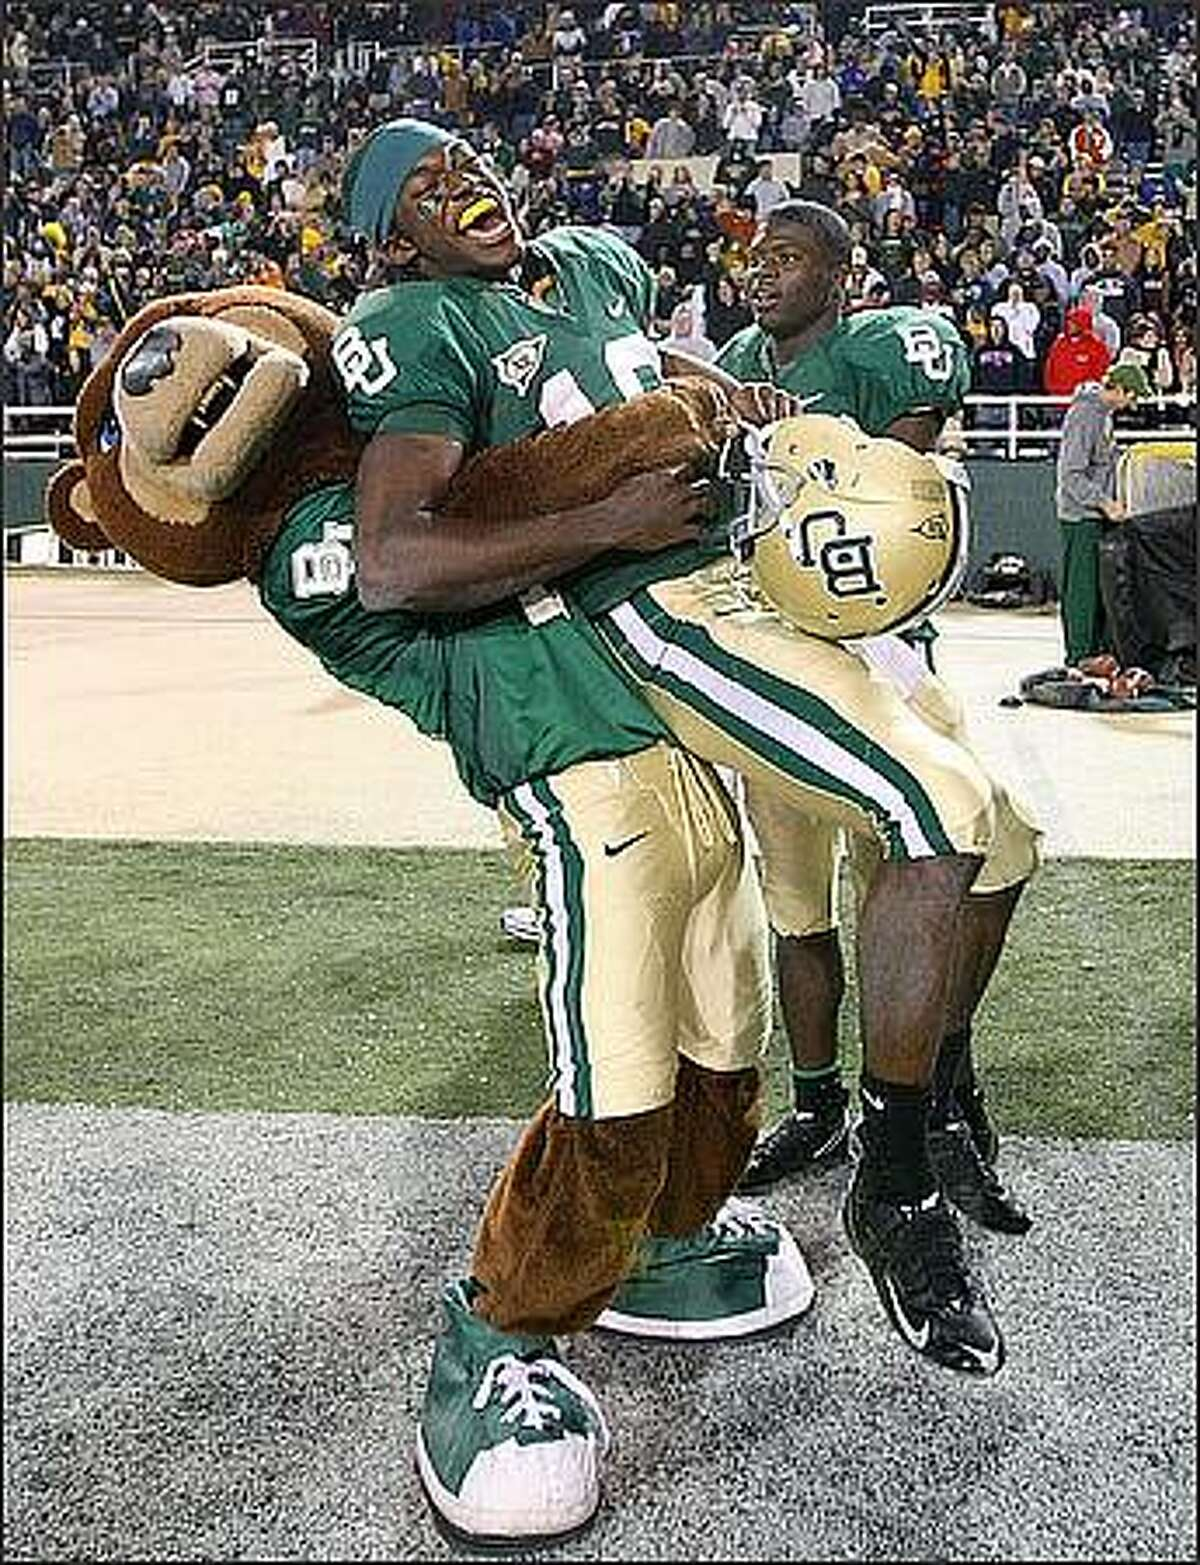 Baylor quarterback Robert Griffin is hugged by Bruiser, the University's mascot, after defeating Texas A&M 41-21 in an NCAA college football game in Waco, Texas. (AP Photo/Waco Tribune Herald, Jerry Larson)